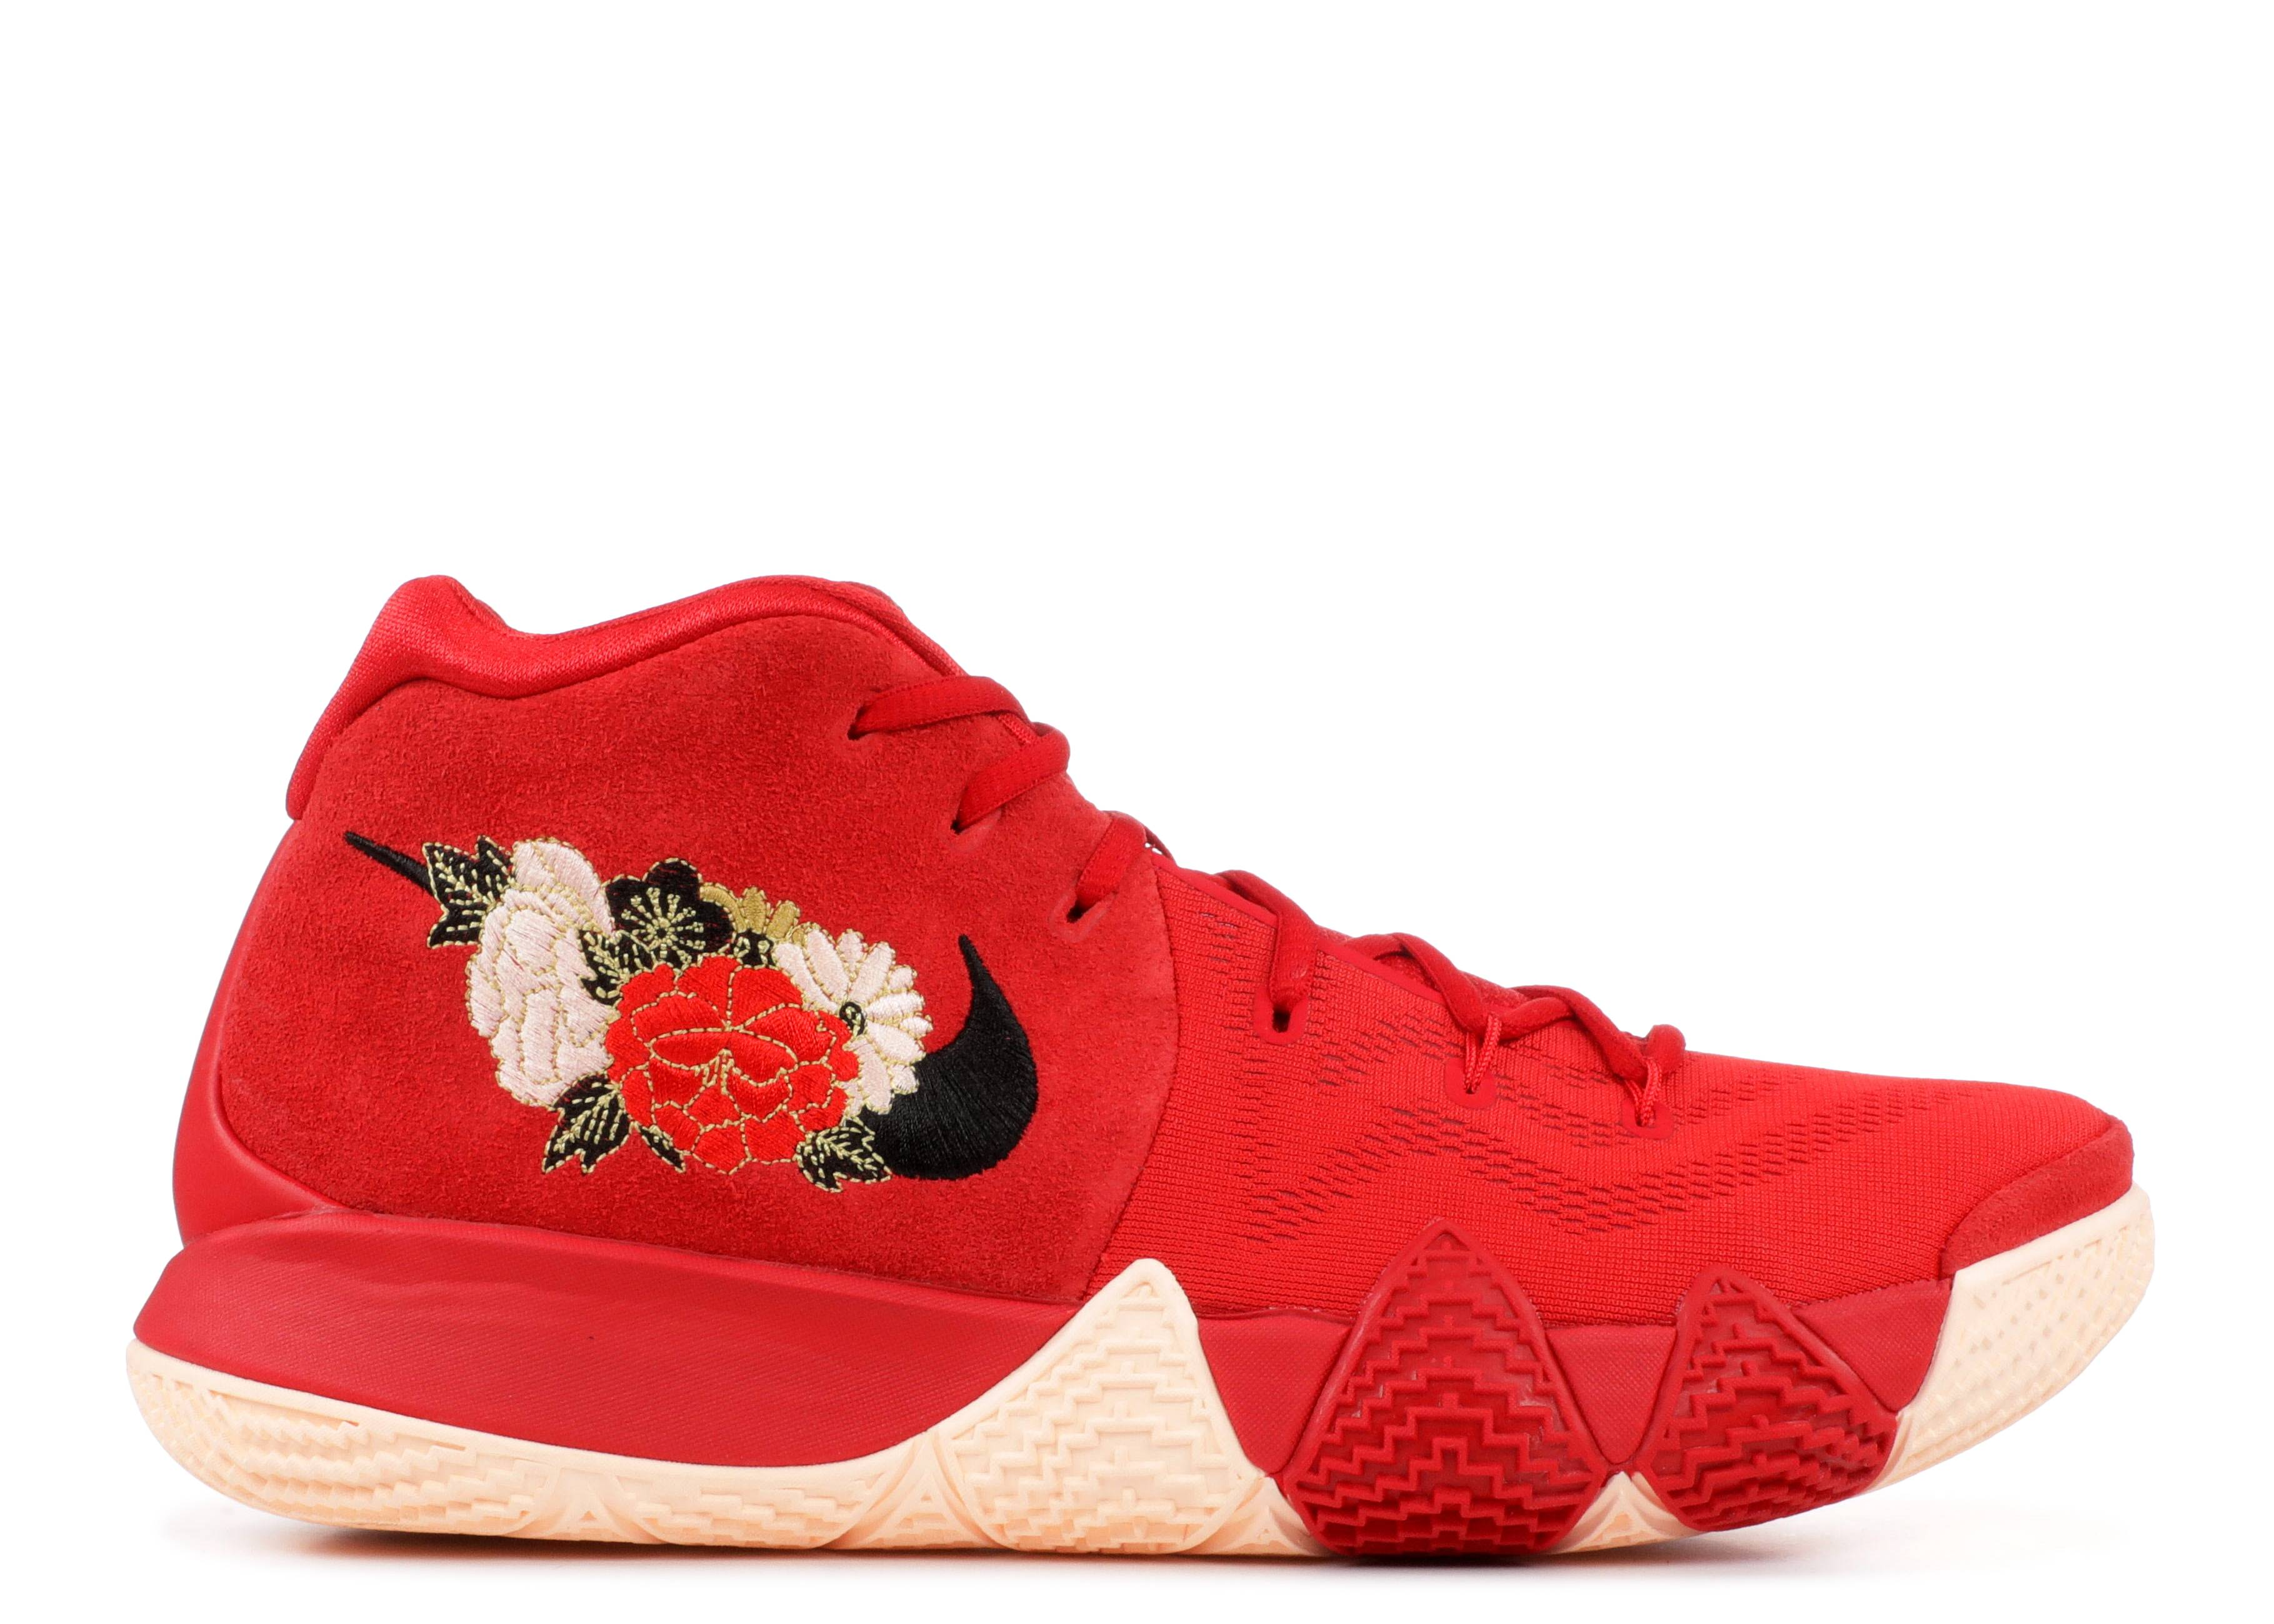 Kyrie 5 EP 'Chinese New Year' Nike AO2919 010 black